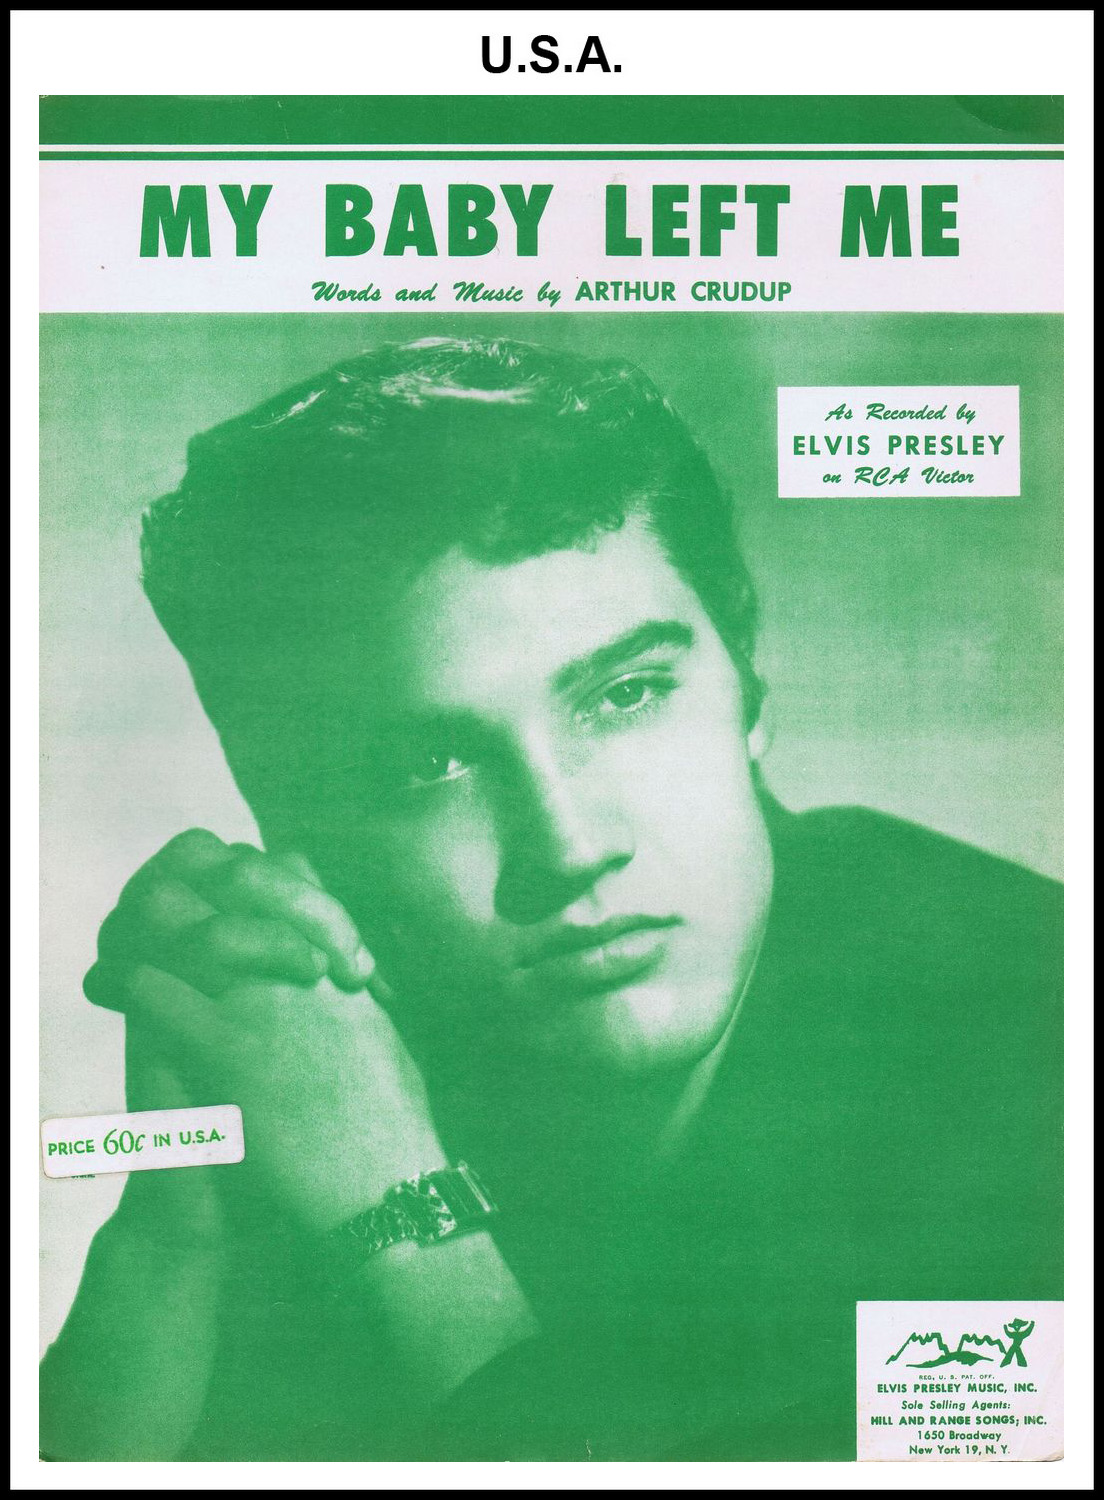 1956 - My Baby Left Me (USA 50c-60c) (CHRIS GILES COLLECTION)